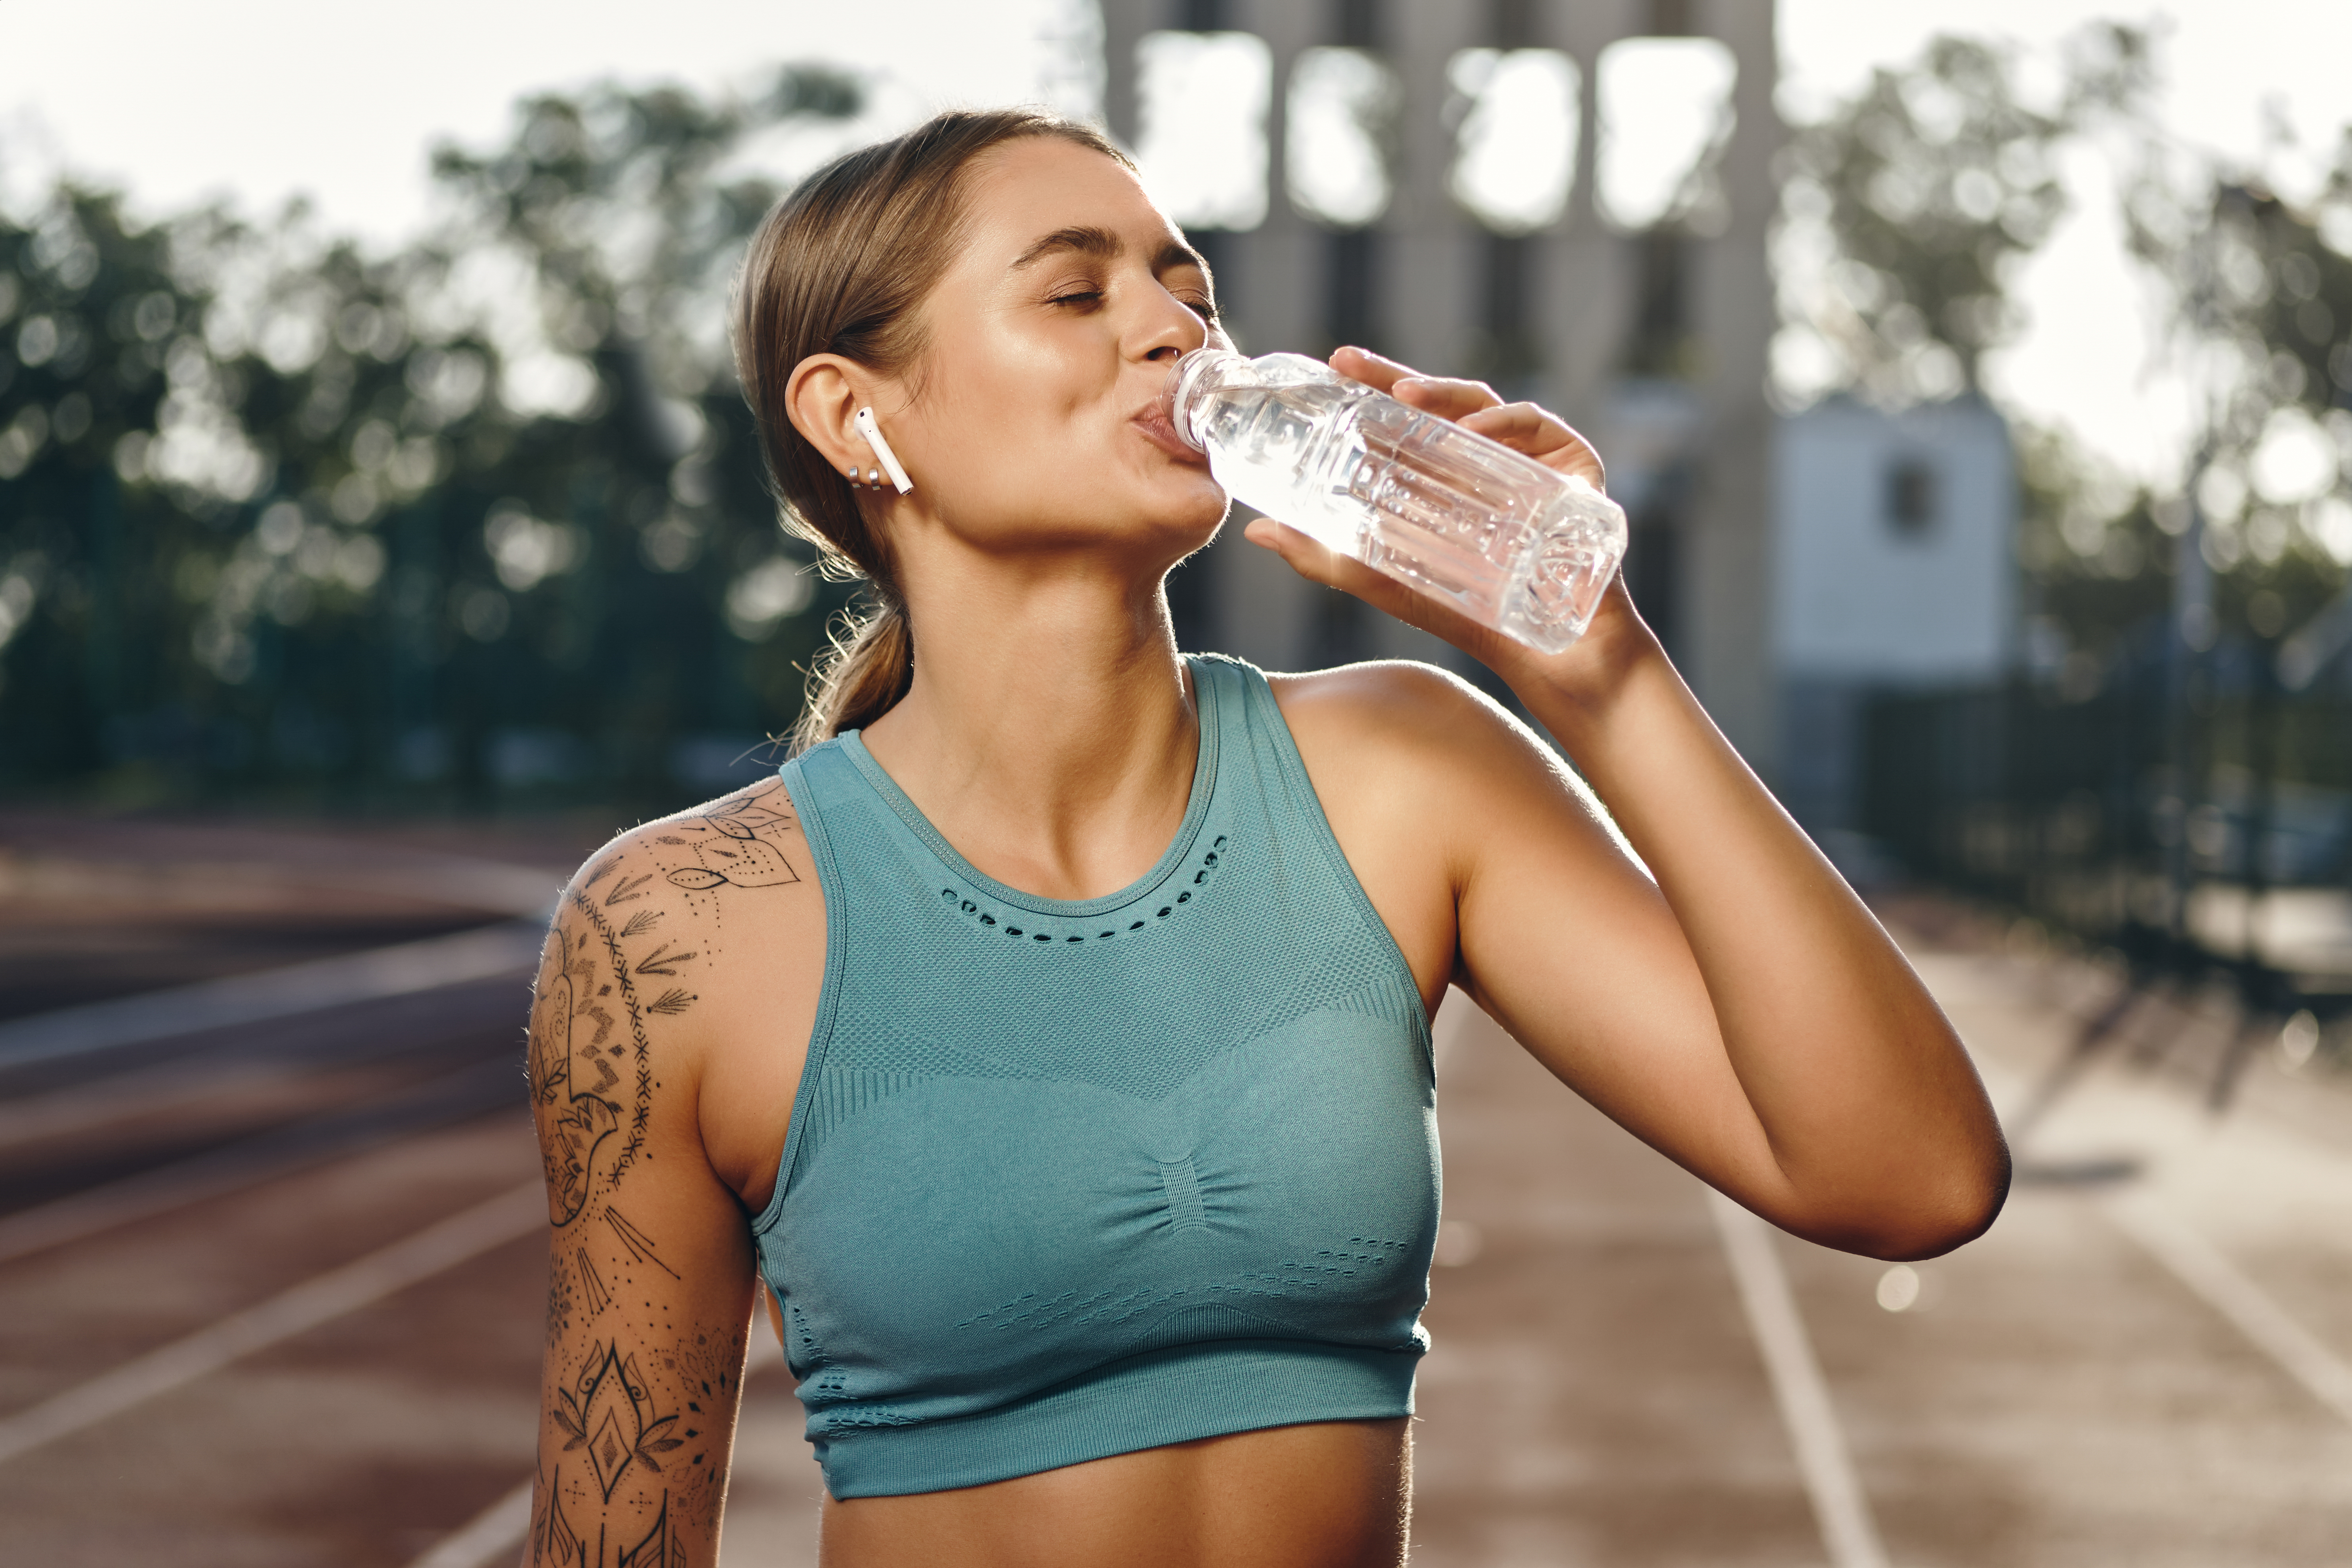 tatooed woman on racetrack takes a drink of water